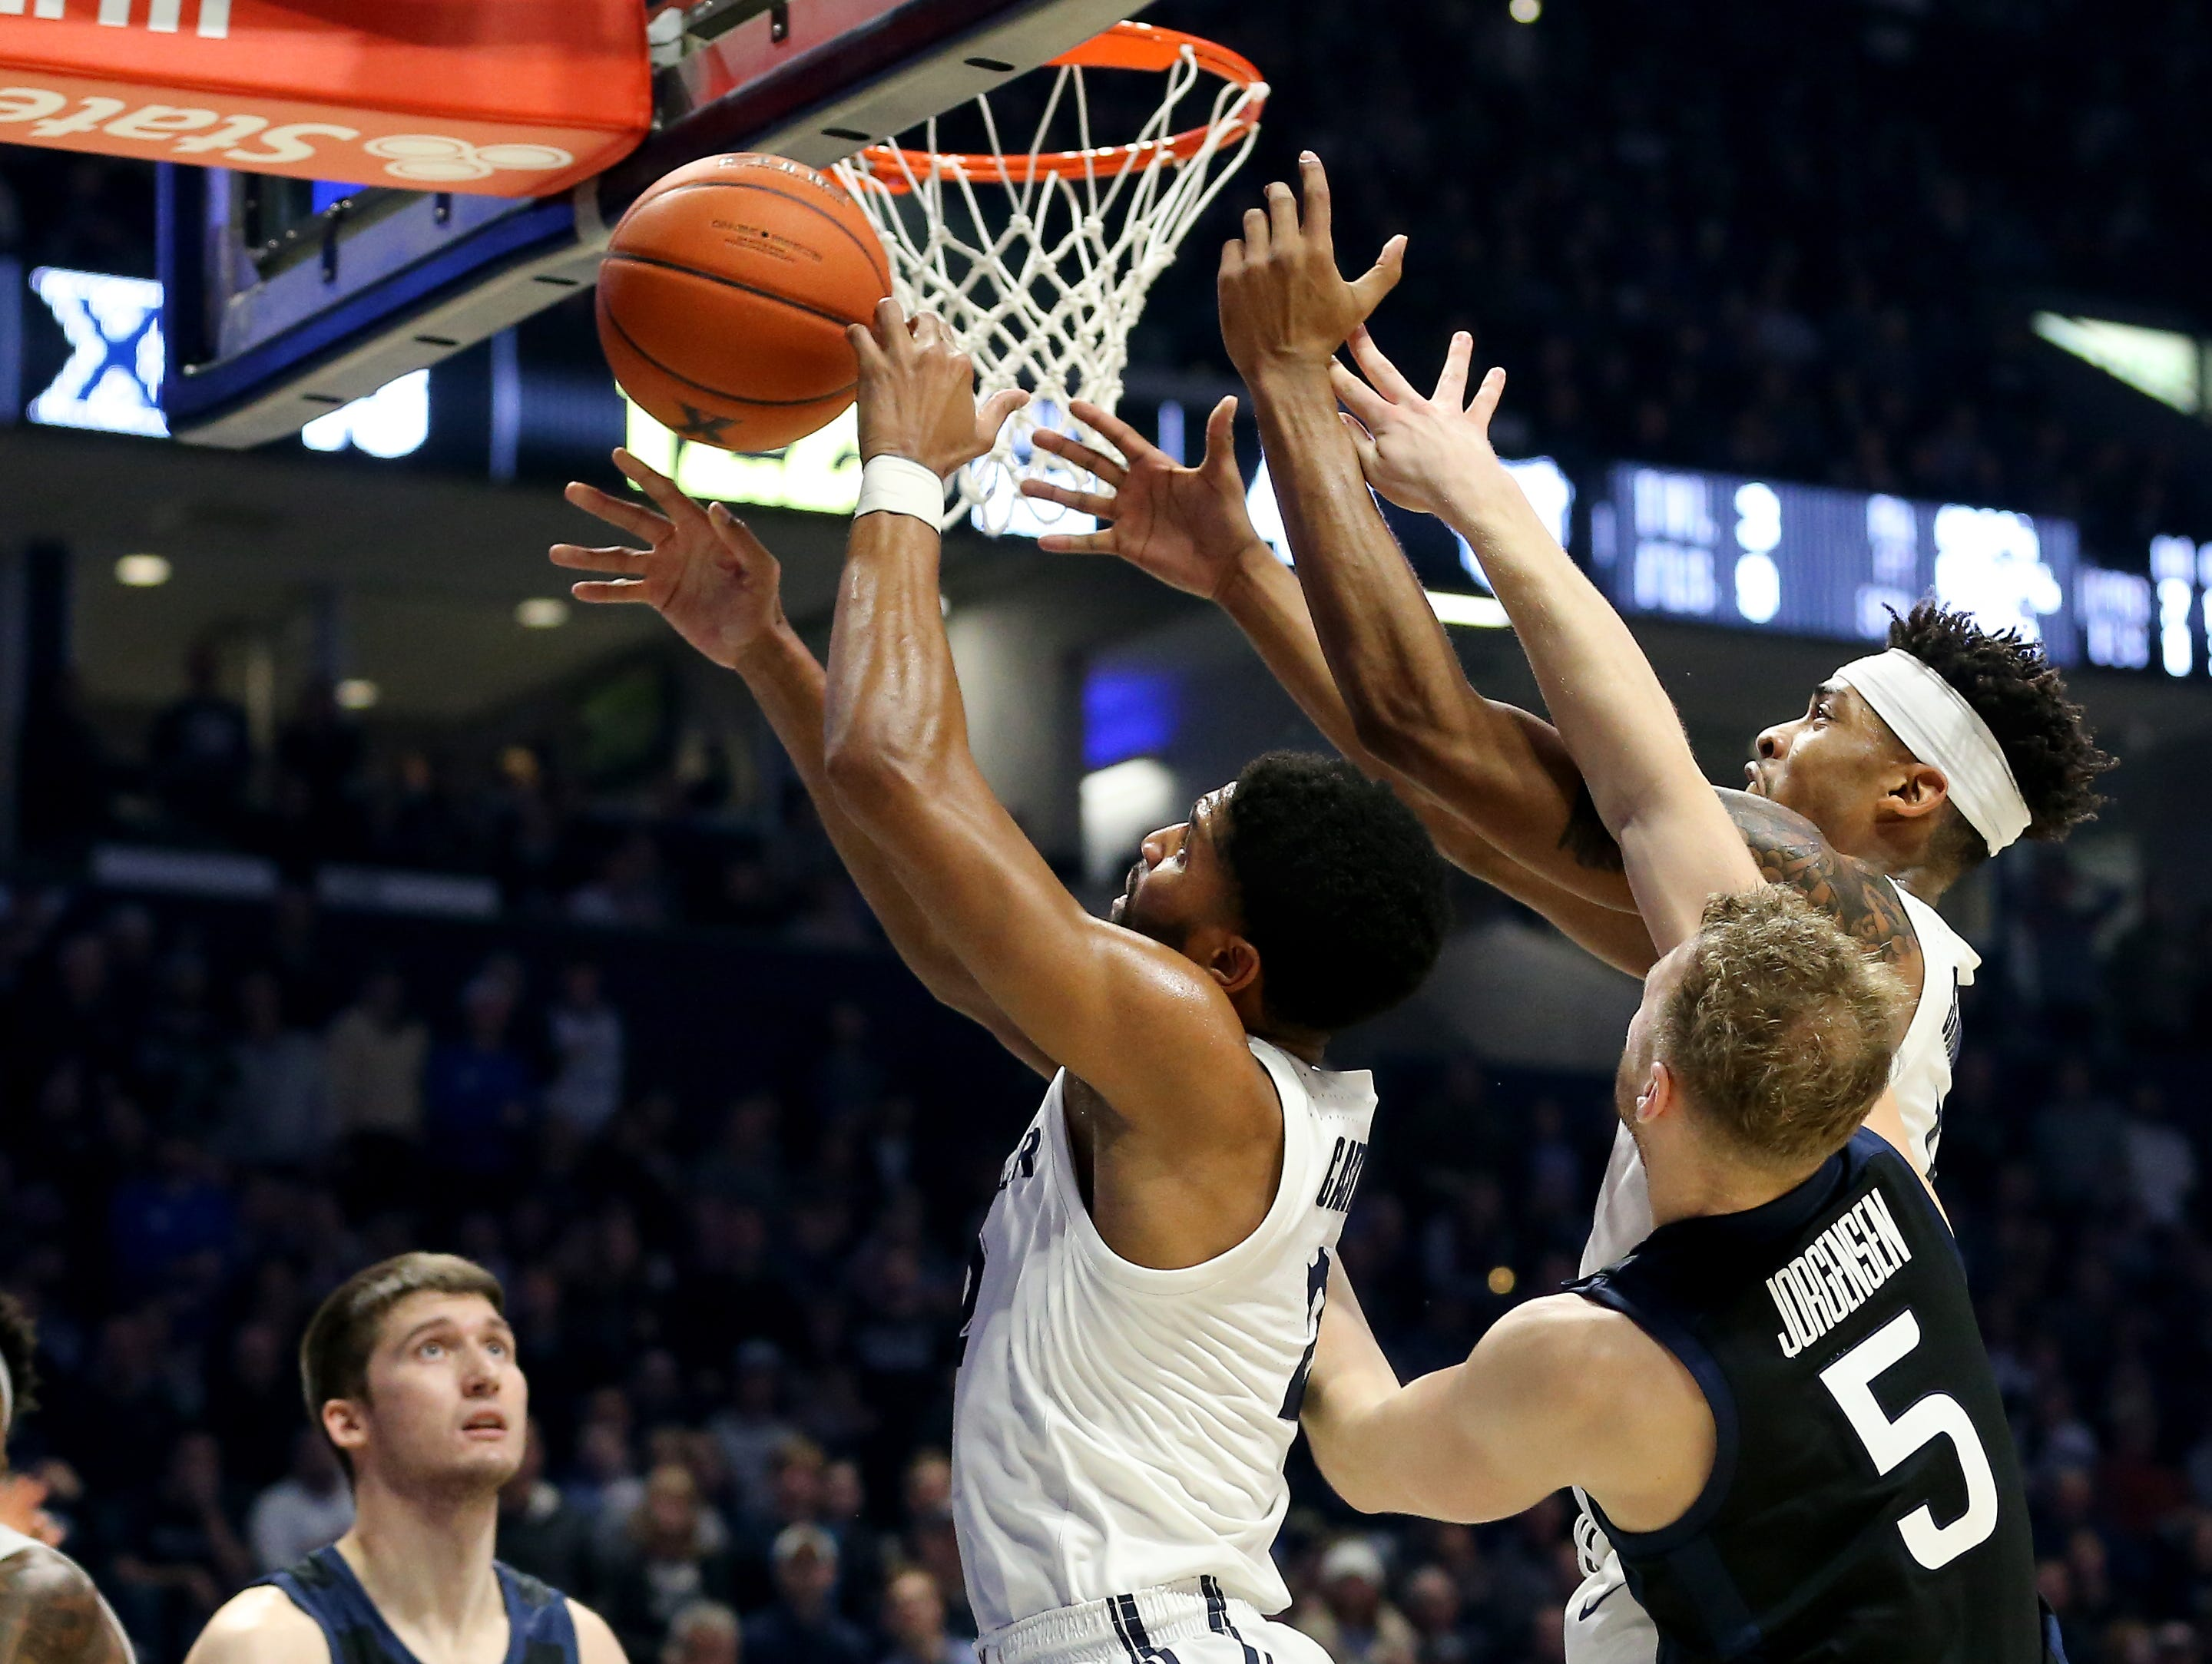 Xavier Musketeers guard Kyle Castlin (2) and Xavier Musketeers guard Paul Scruggs (1) battle for a rebound against Butler Bulldogs guard Paul Jorgensen (5) in the second half of an NCAA college basketball game, Sunday, Jan. 13, 2019, at Cintas Center in Cincinnati. Xavier Musketeers won 70-69.